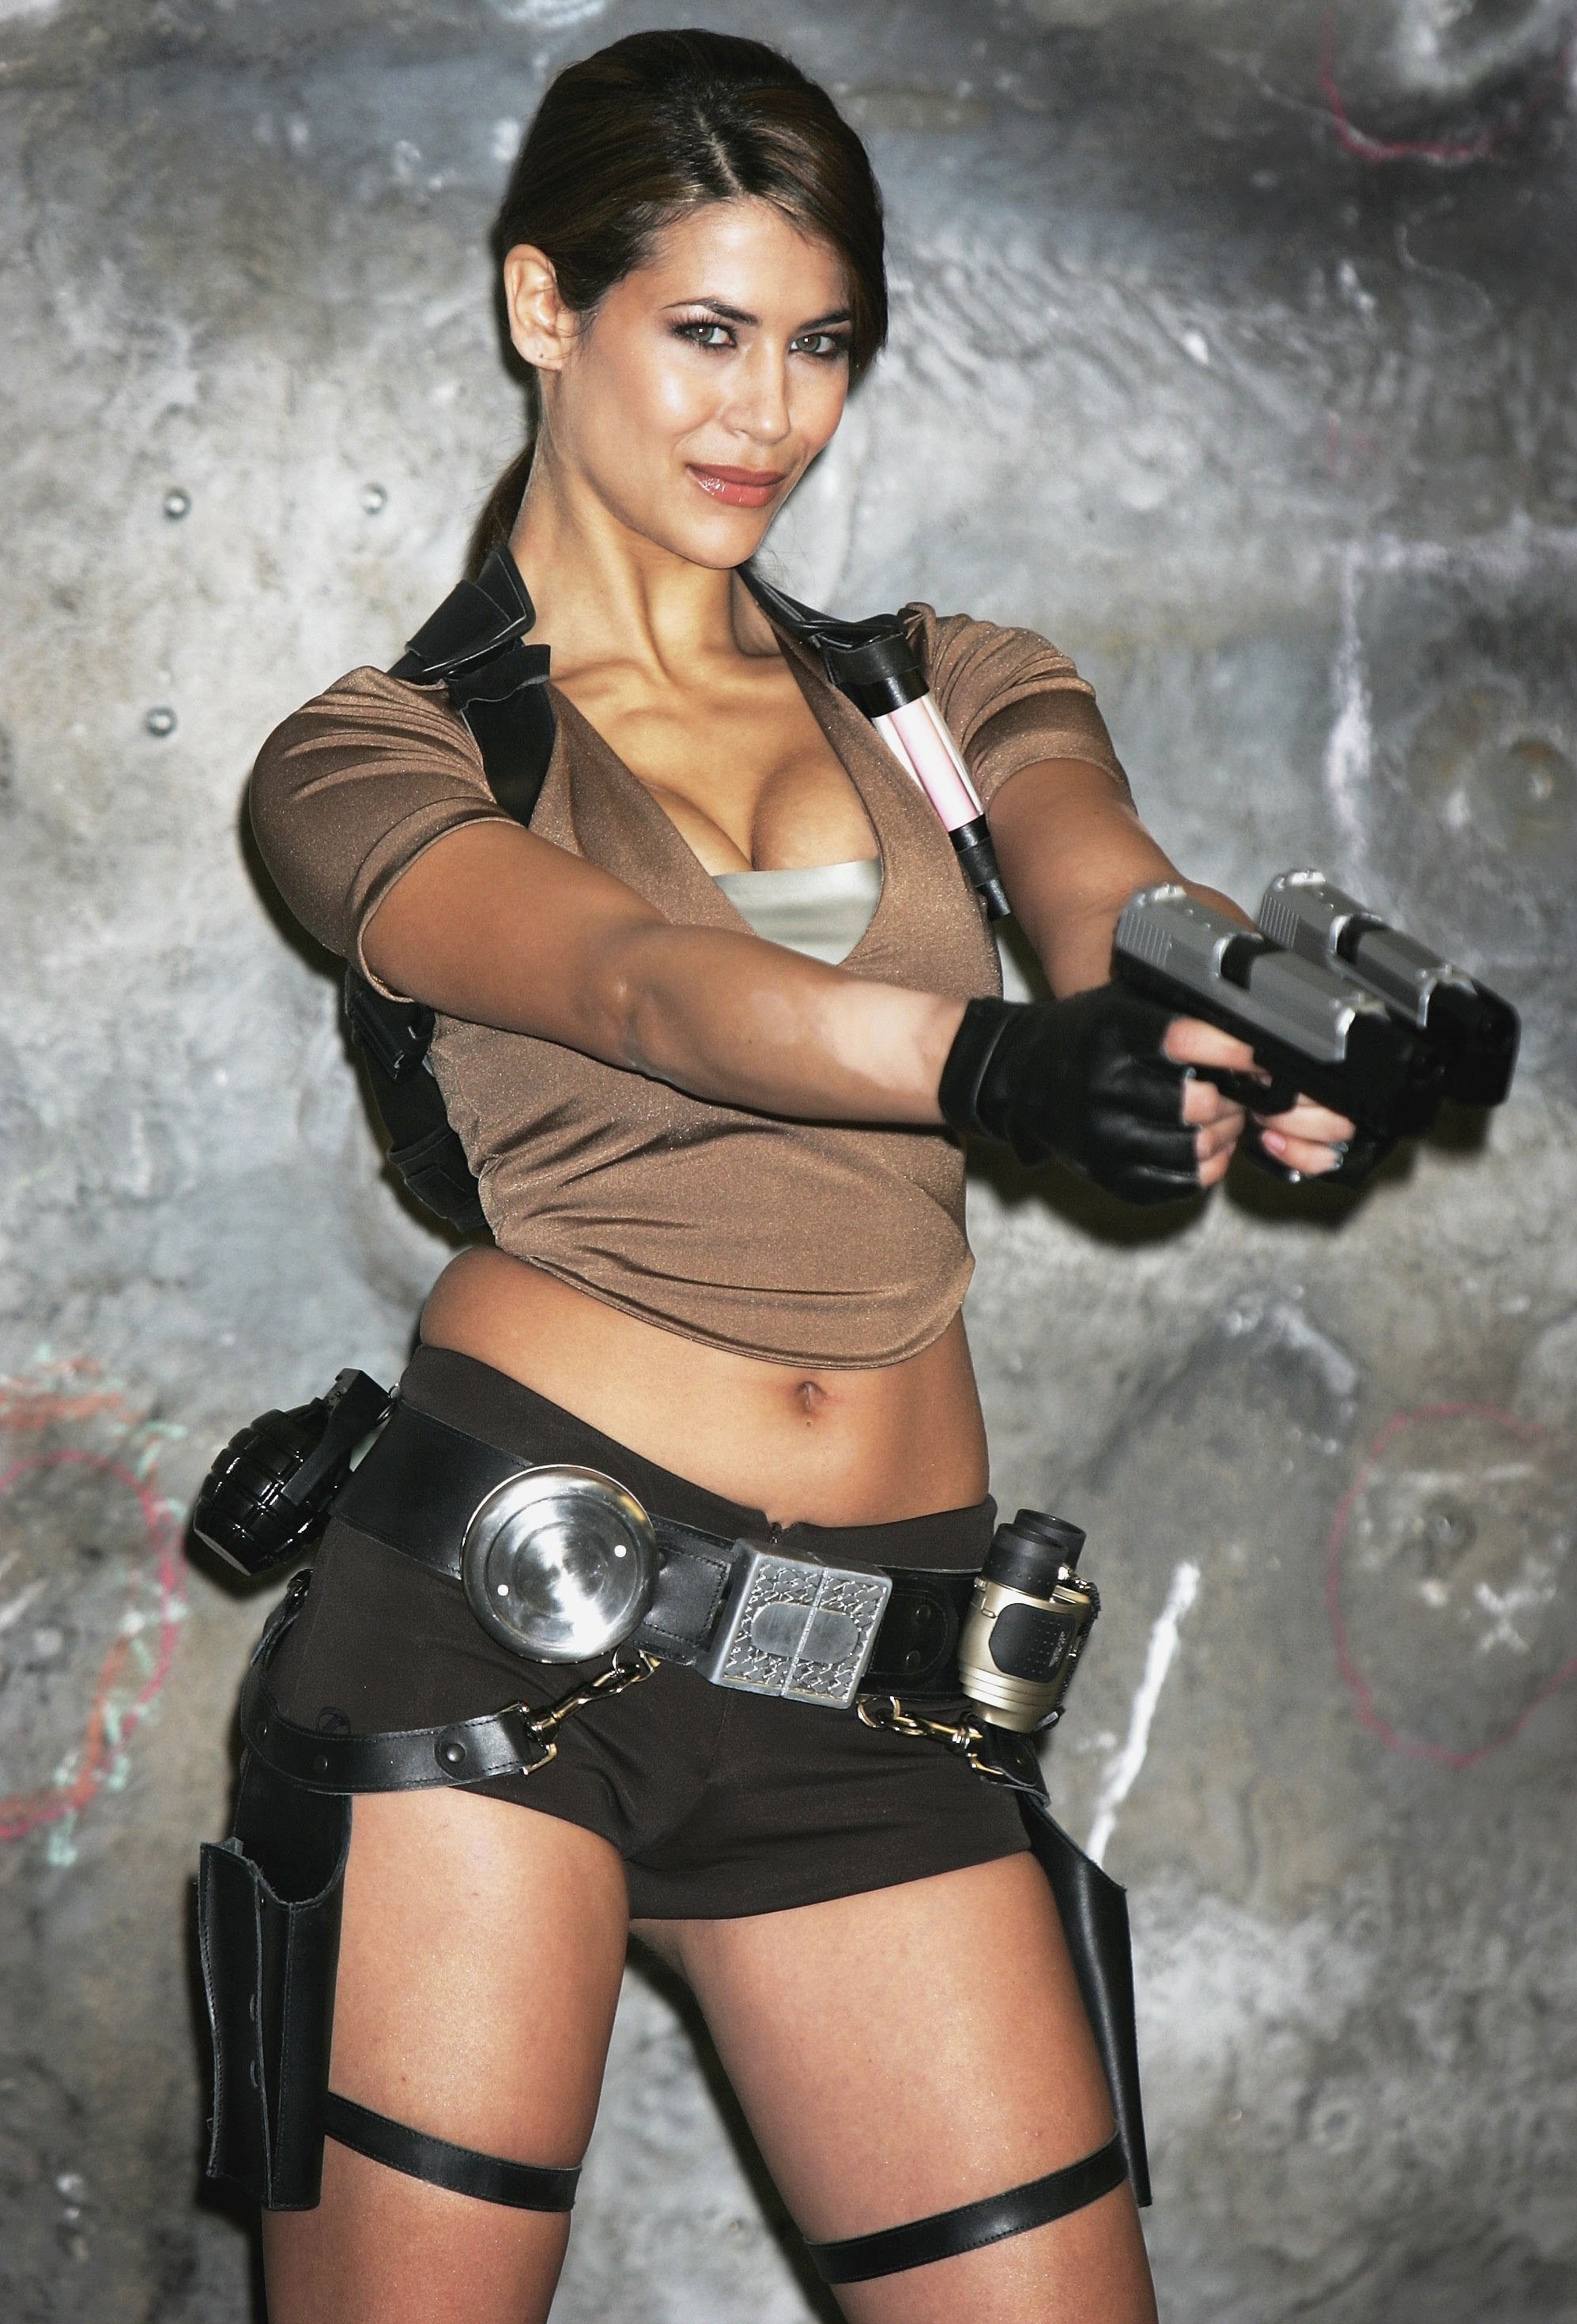 Tomb Raider Lara Croft cosplayer Karima Adebibe